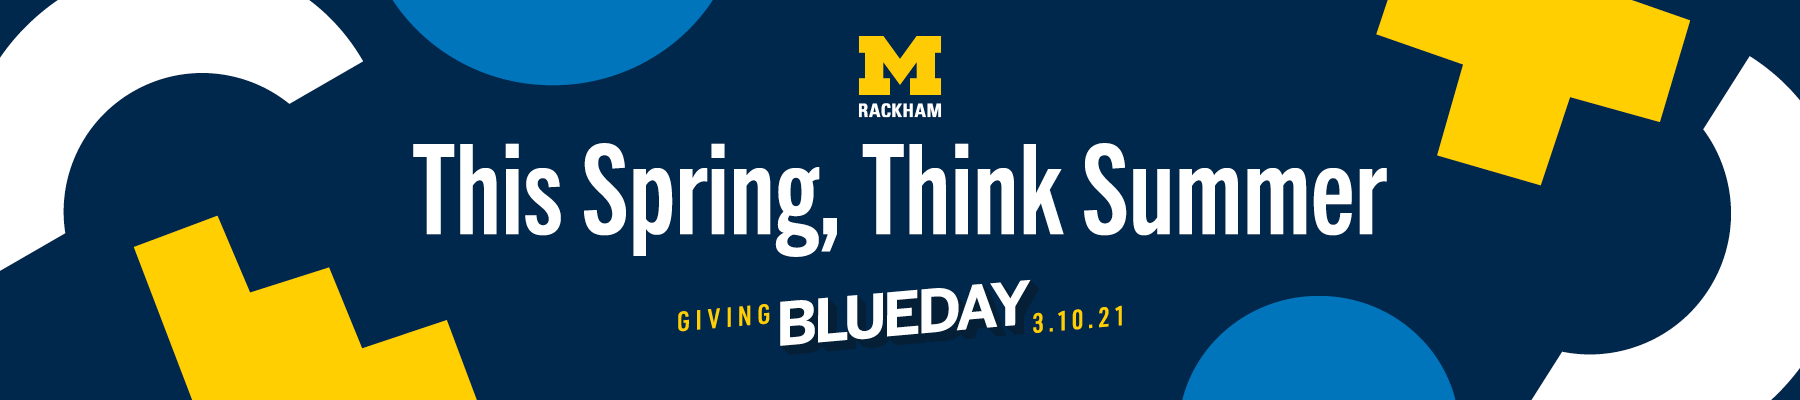 Yellow Michigan Block M, Rackham and This Spring, Think Summer, Giving Blueday, Marc 10, 2021